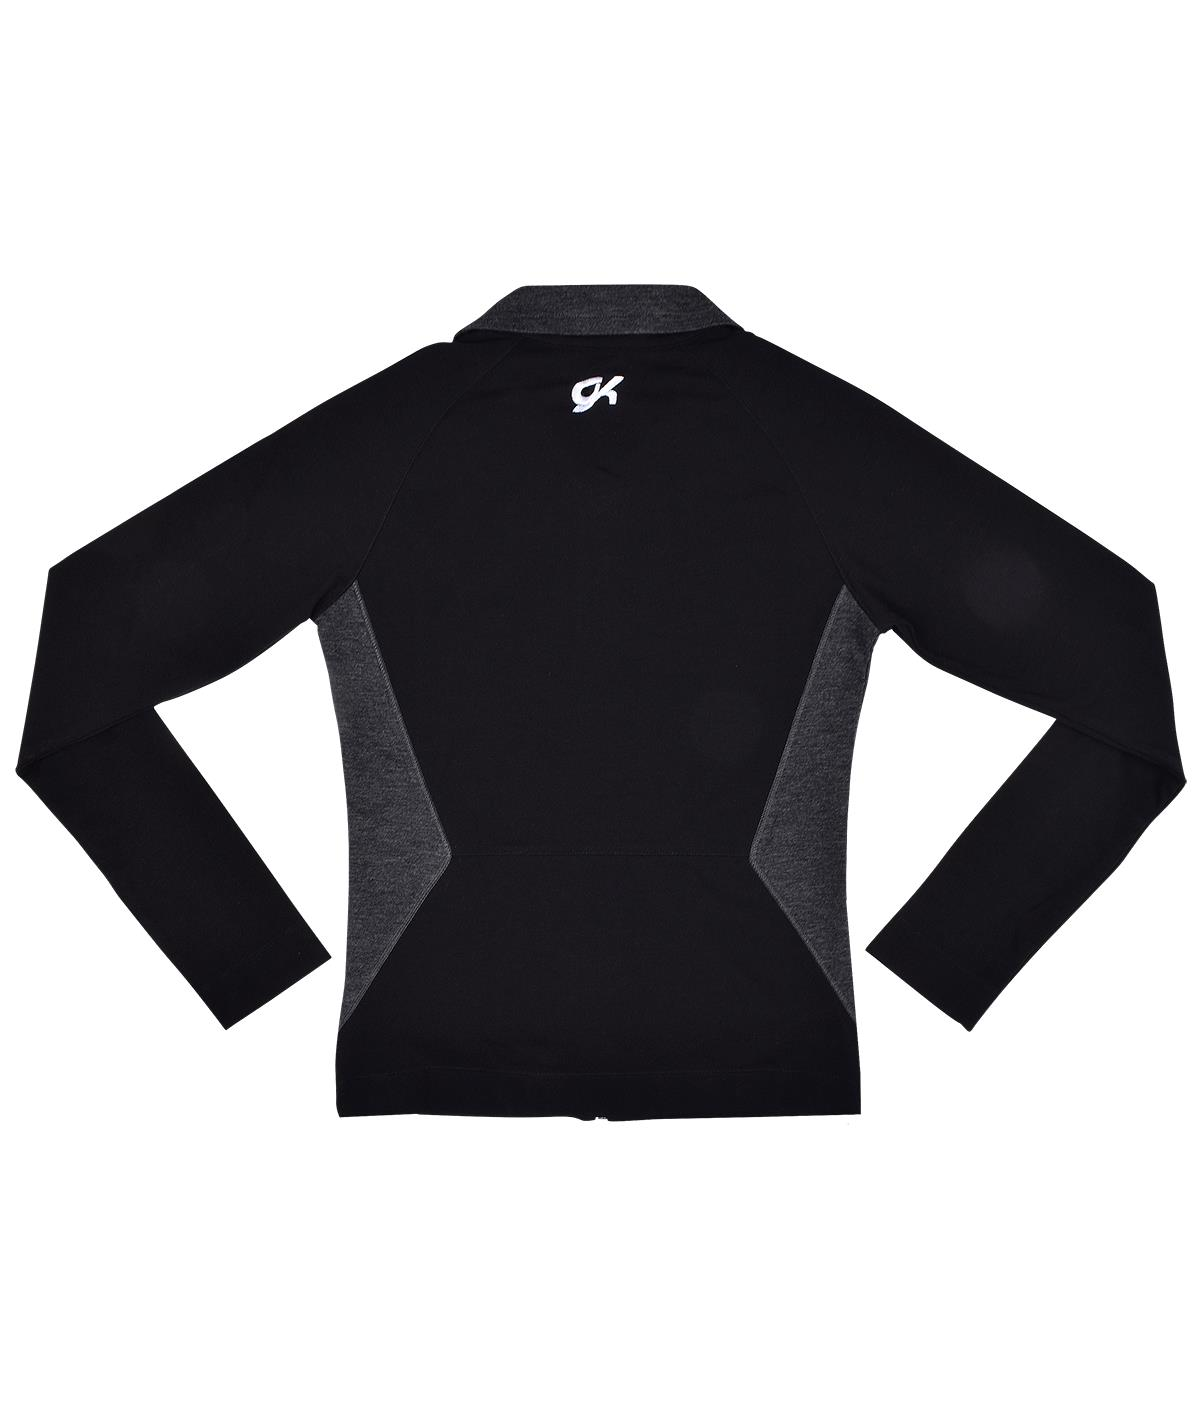 GK Elite Balance Fitted Warmup Jacket